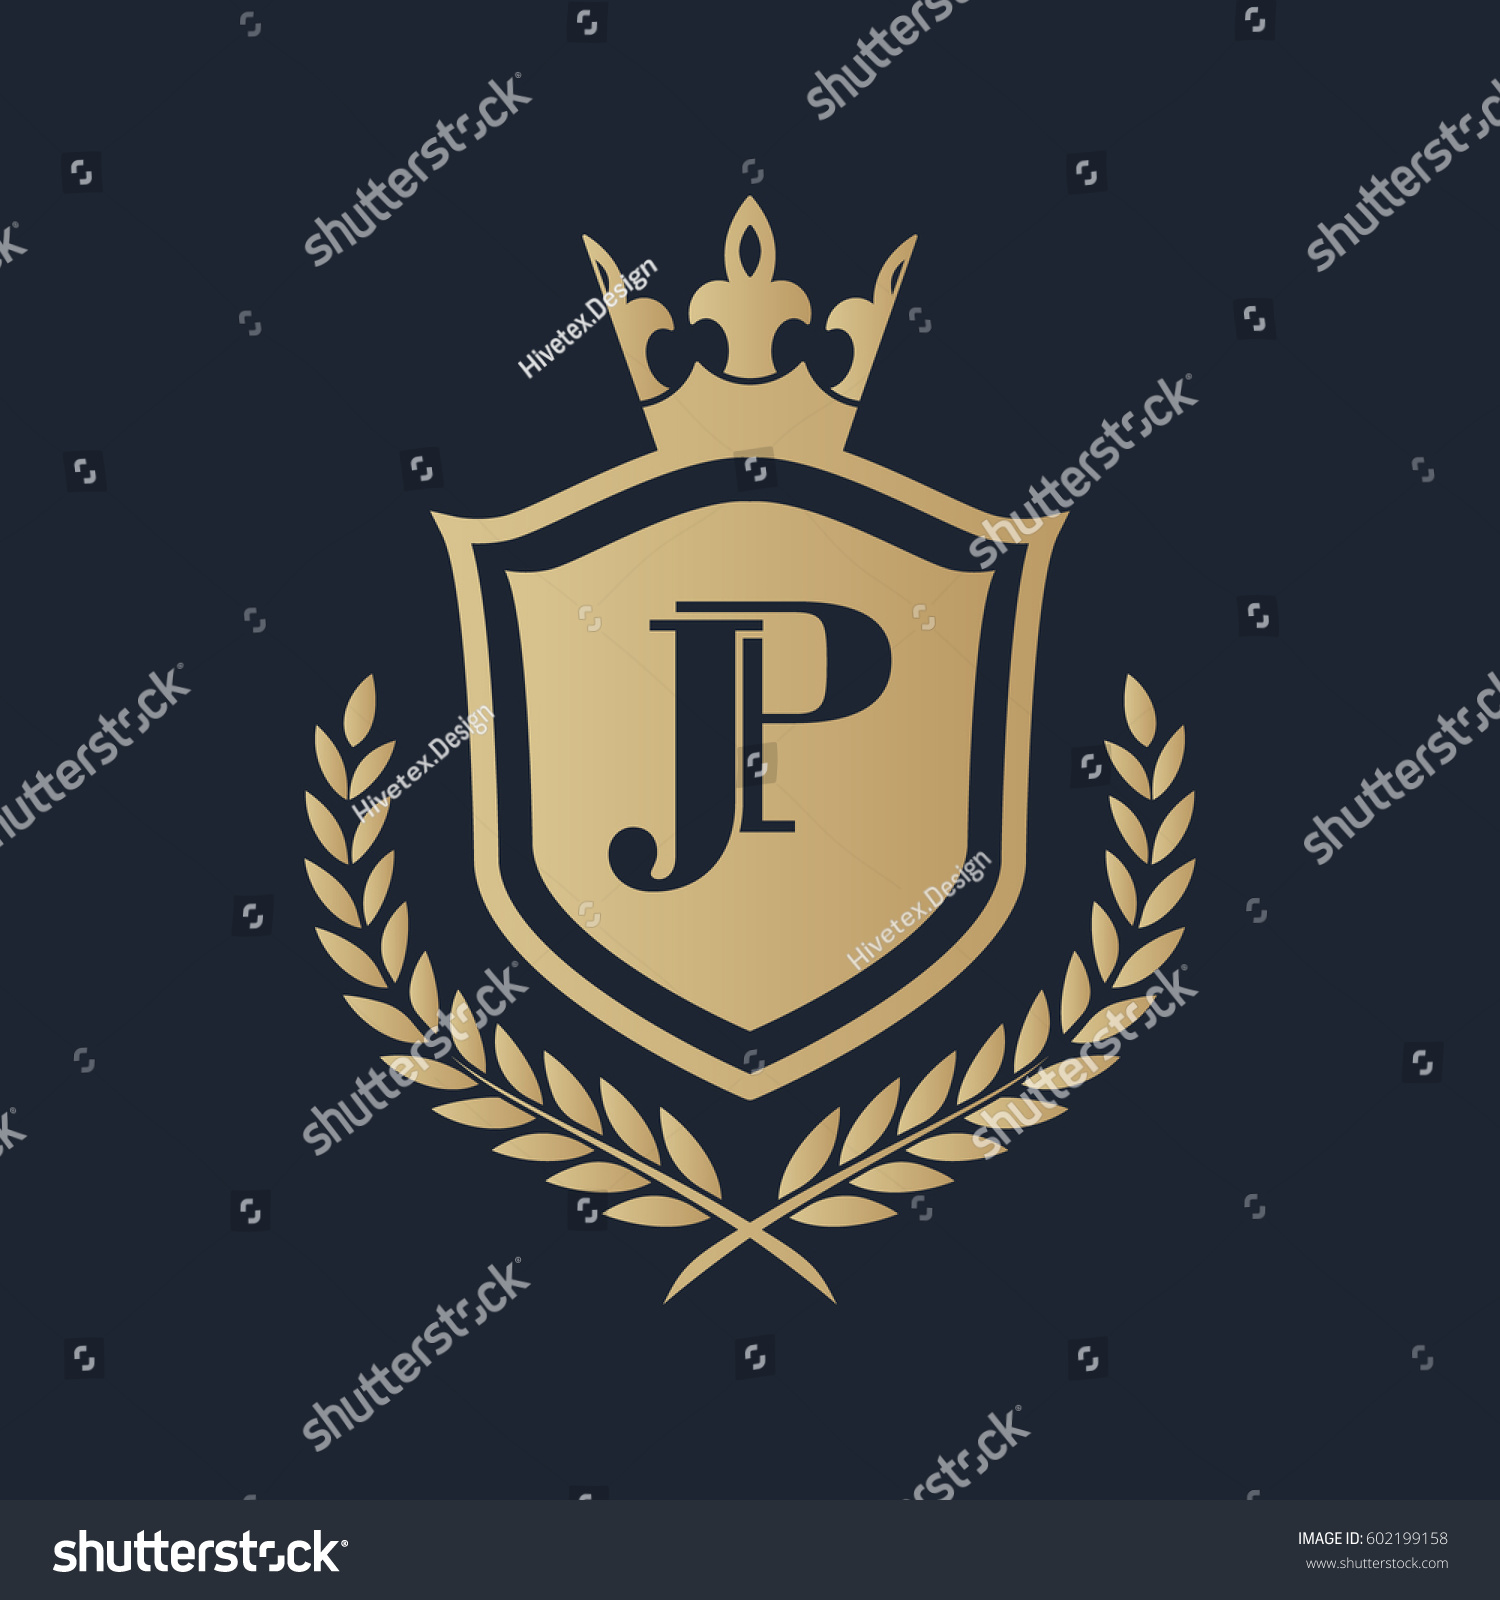 jp logo stock vector royalty free 602199158 shutterstock